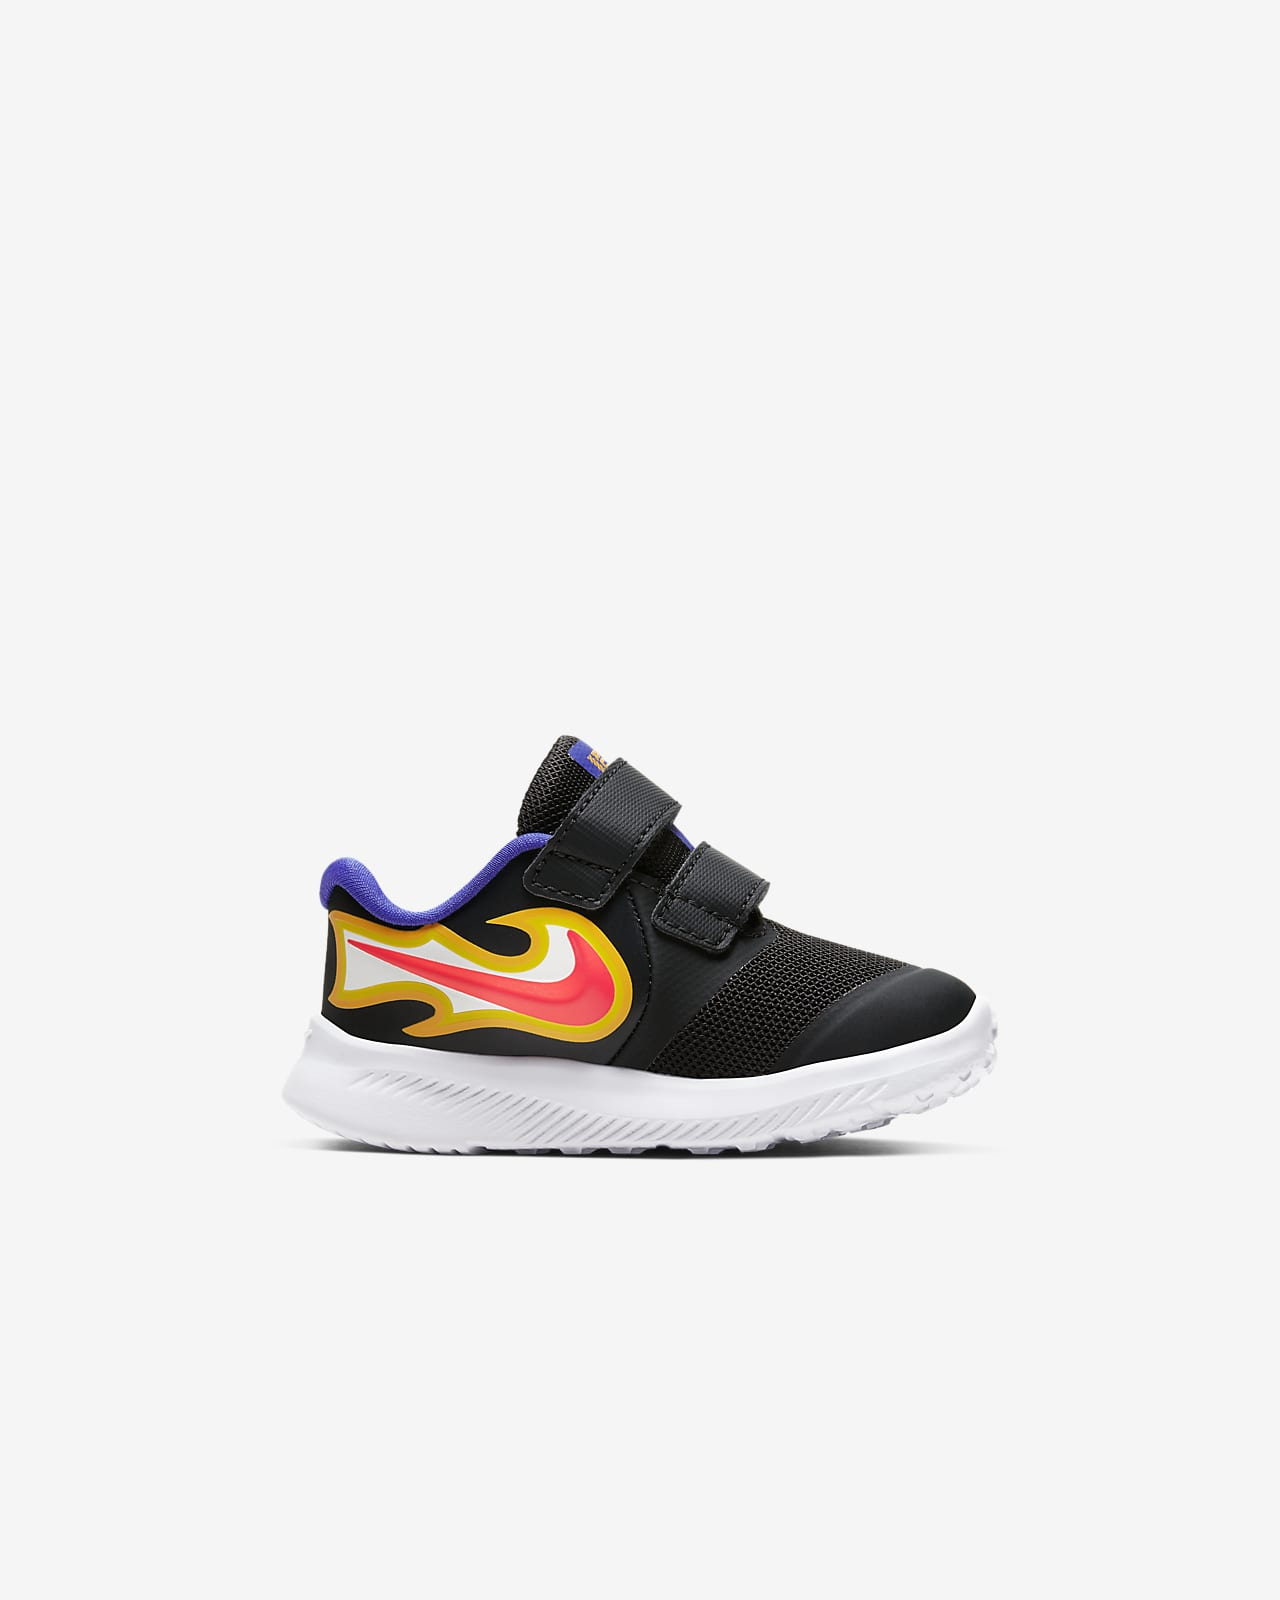 Nike Star Runner 2 Fire Baby and